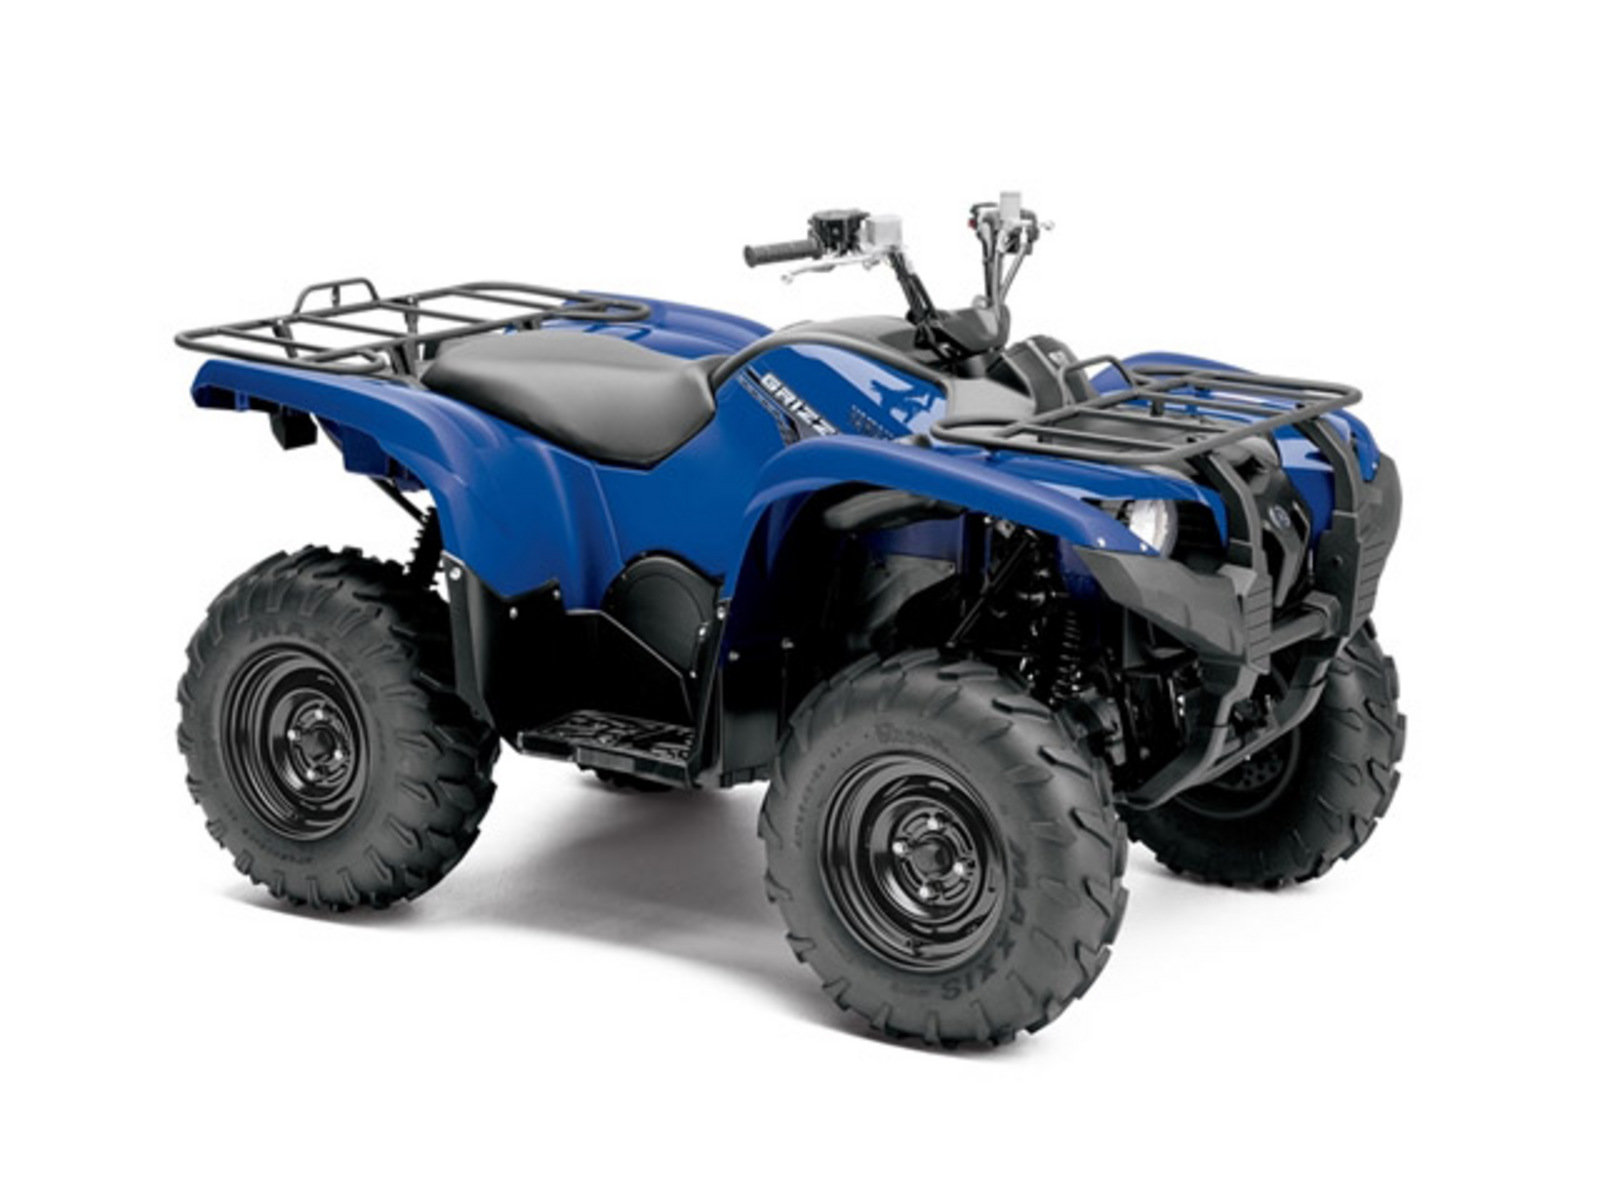 2015 yamaha grizzly 700 fi auto 4x4 review top speed. Black Bedroom Furniture Sets. Home Design Ideas